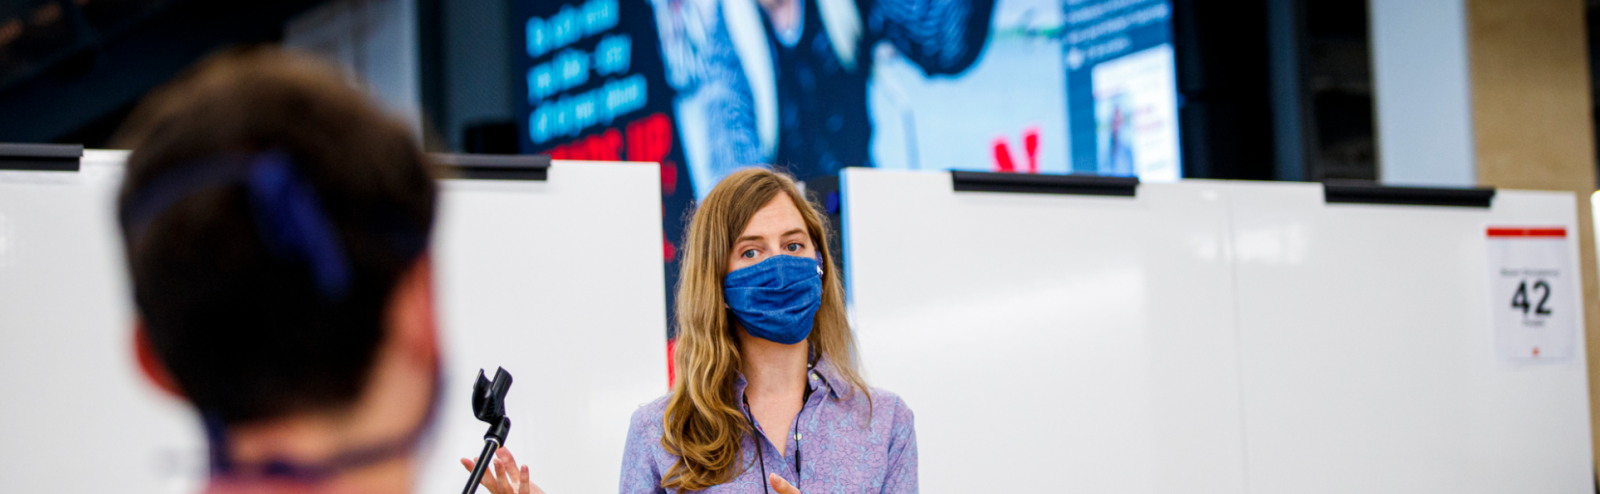 Woman teaching a class with a mask on and and a large display behind her.